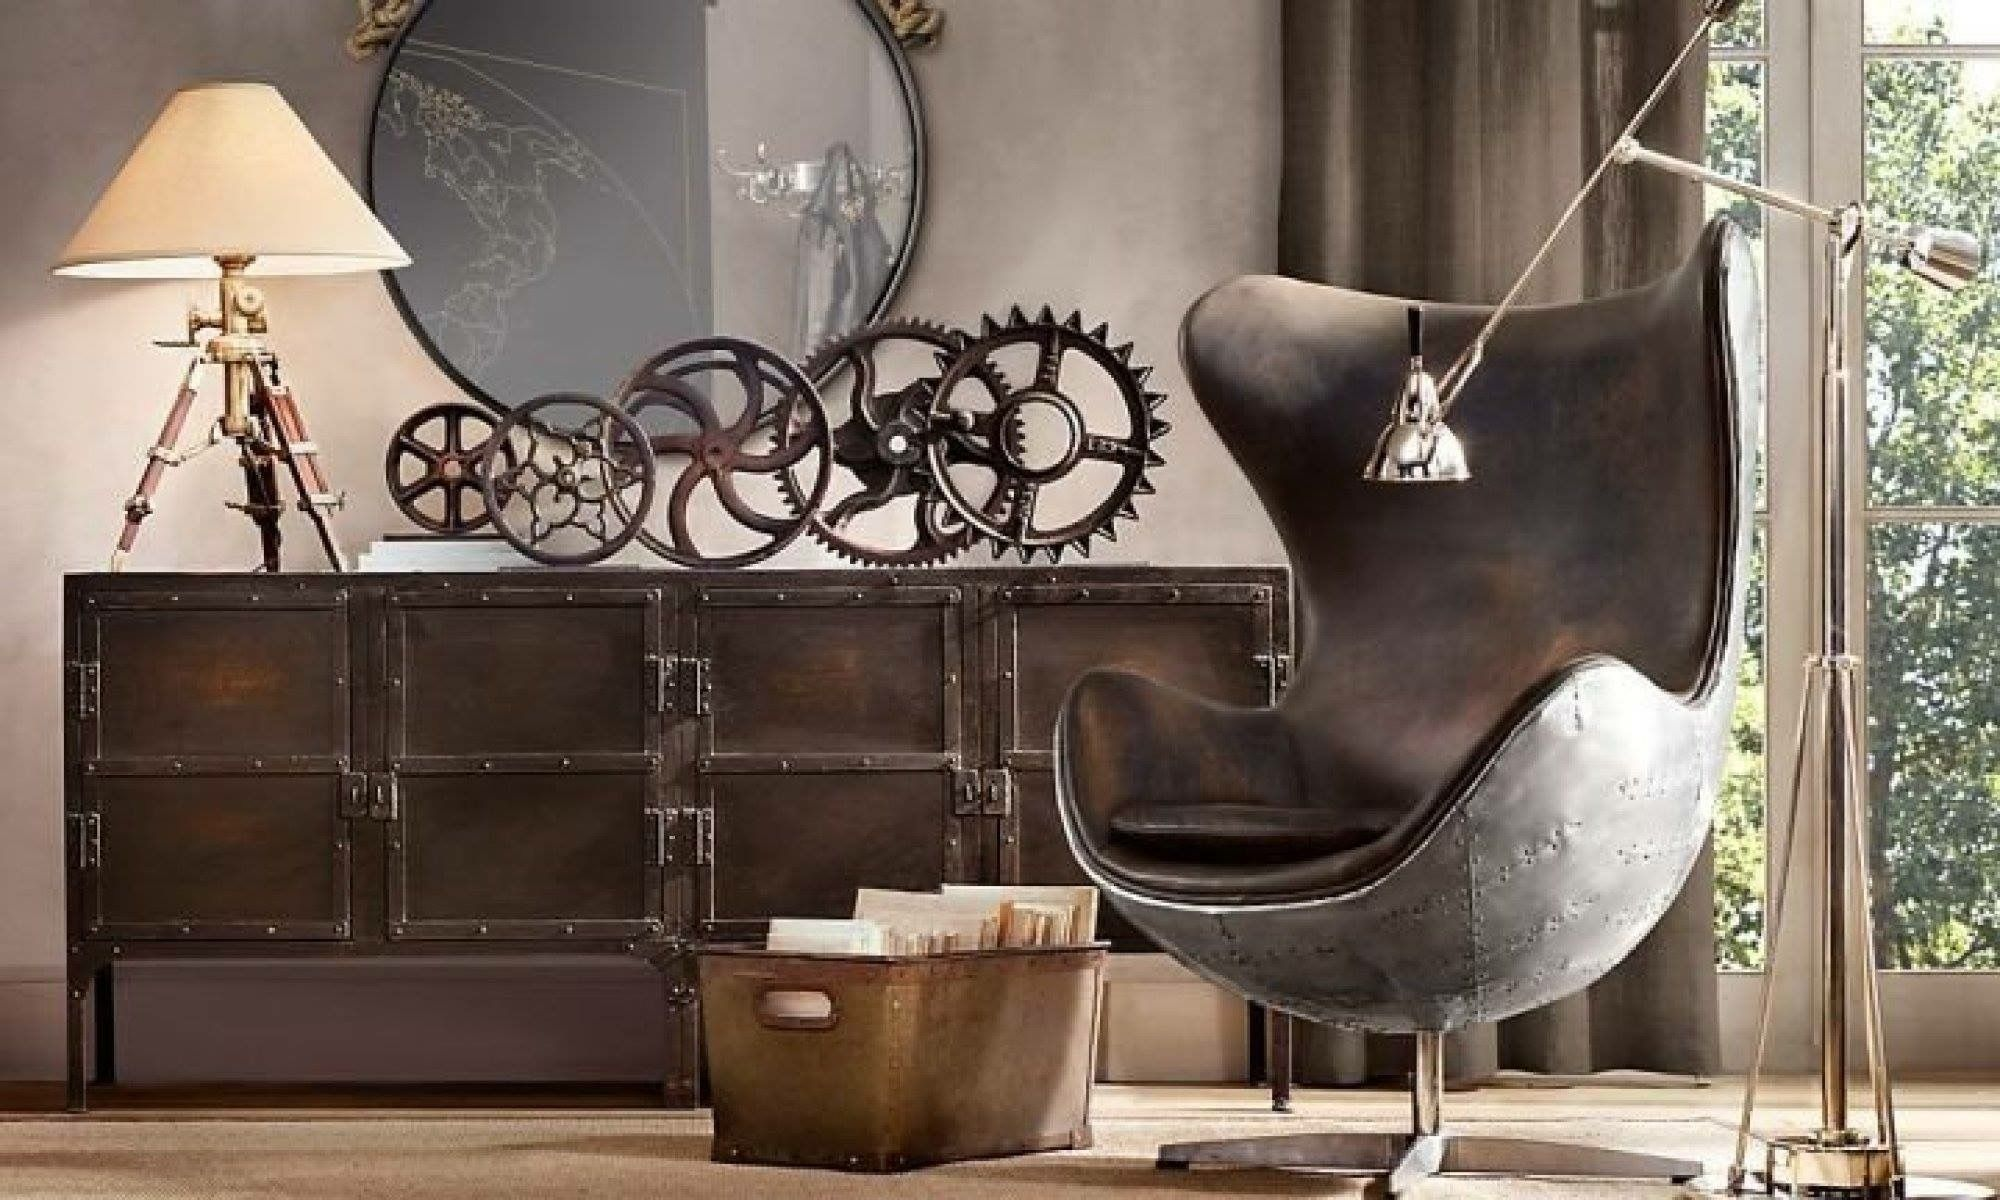 Design Couchtisch District Пин от пользователя Ndisart Interior Design на доске Интерьер в